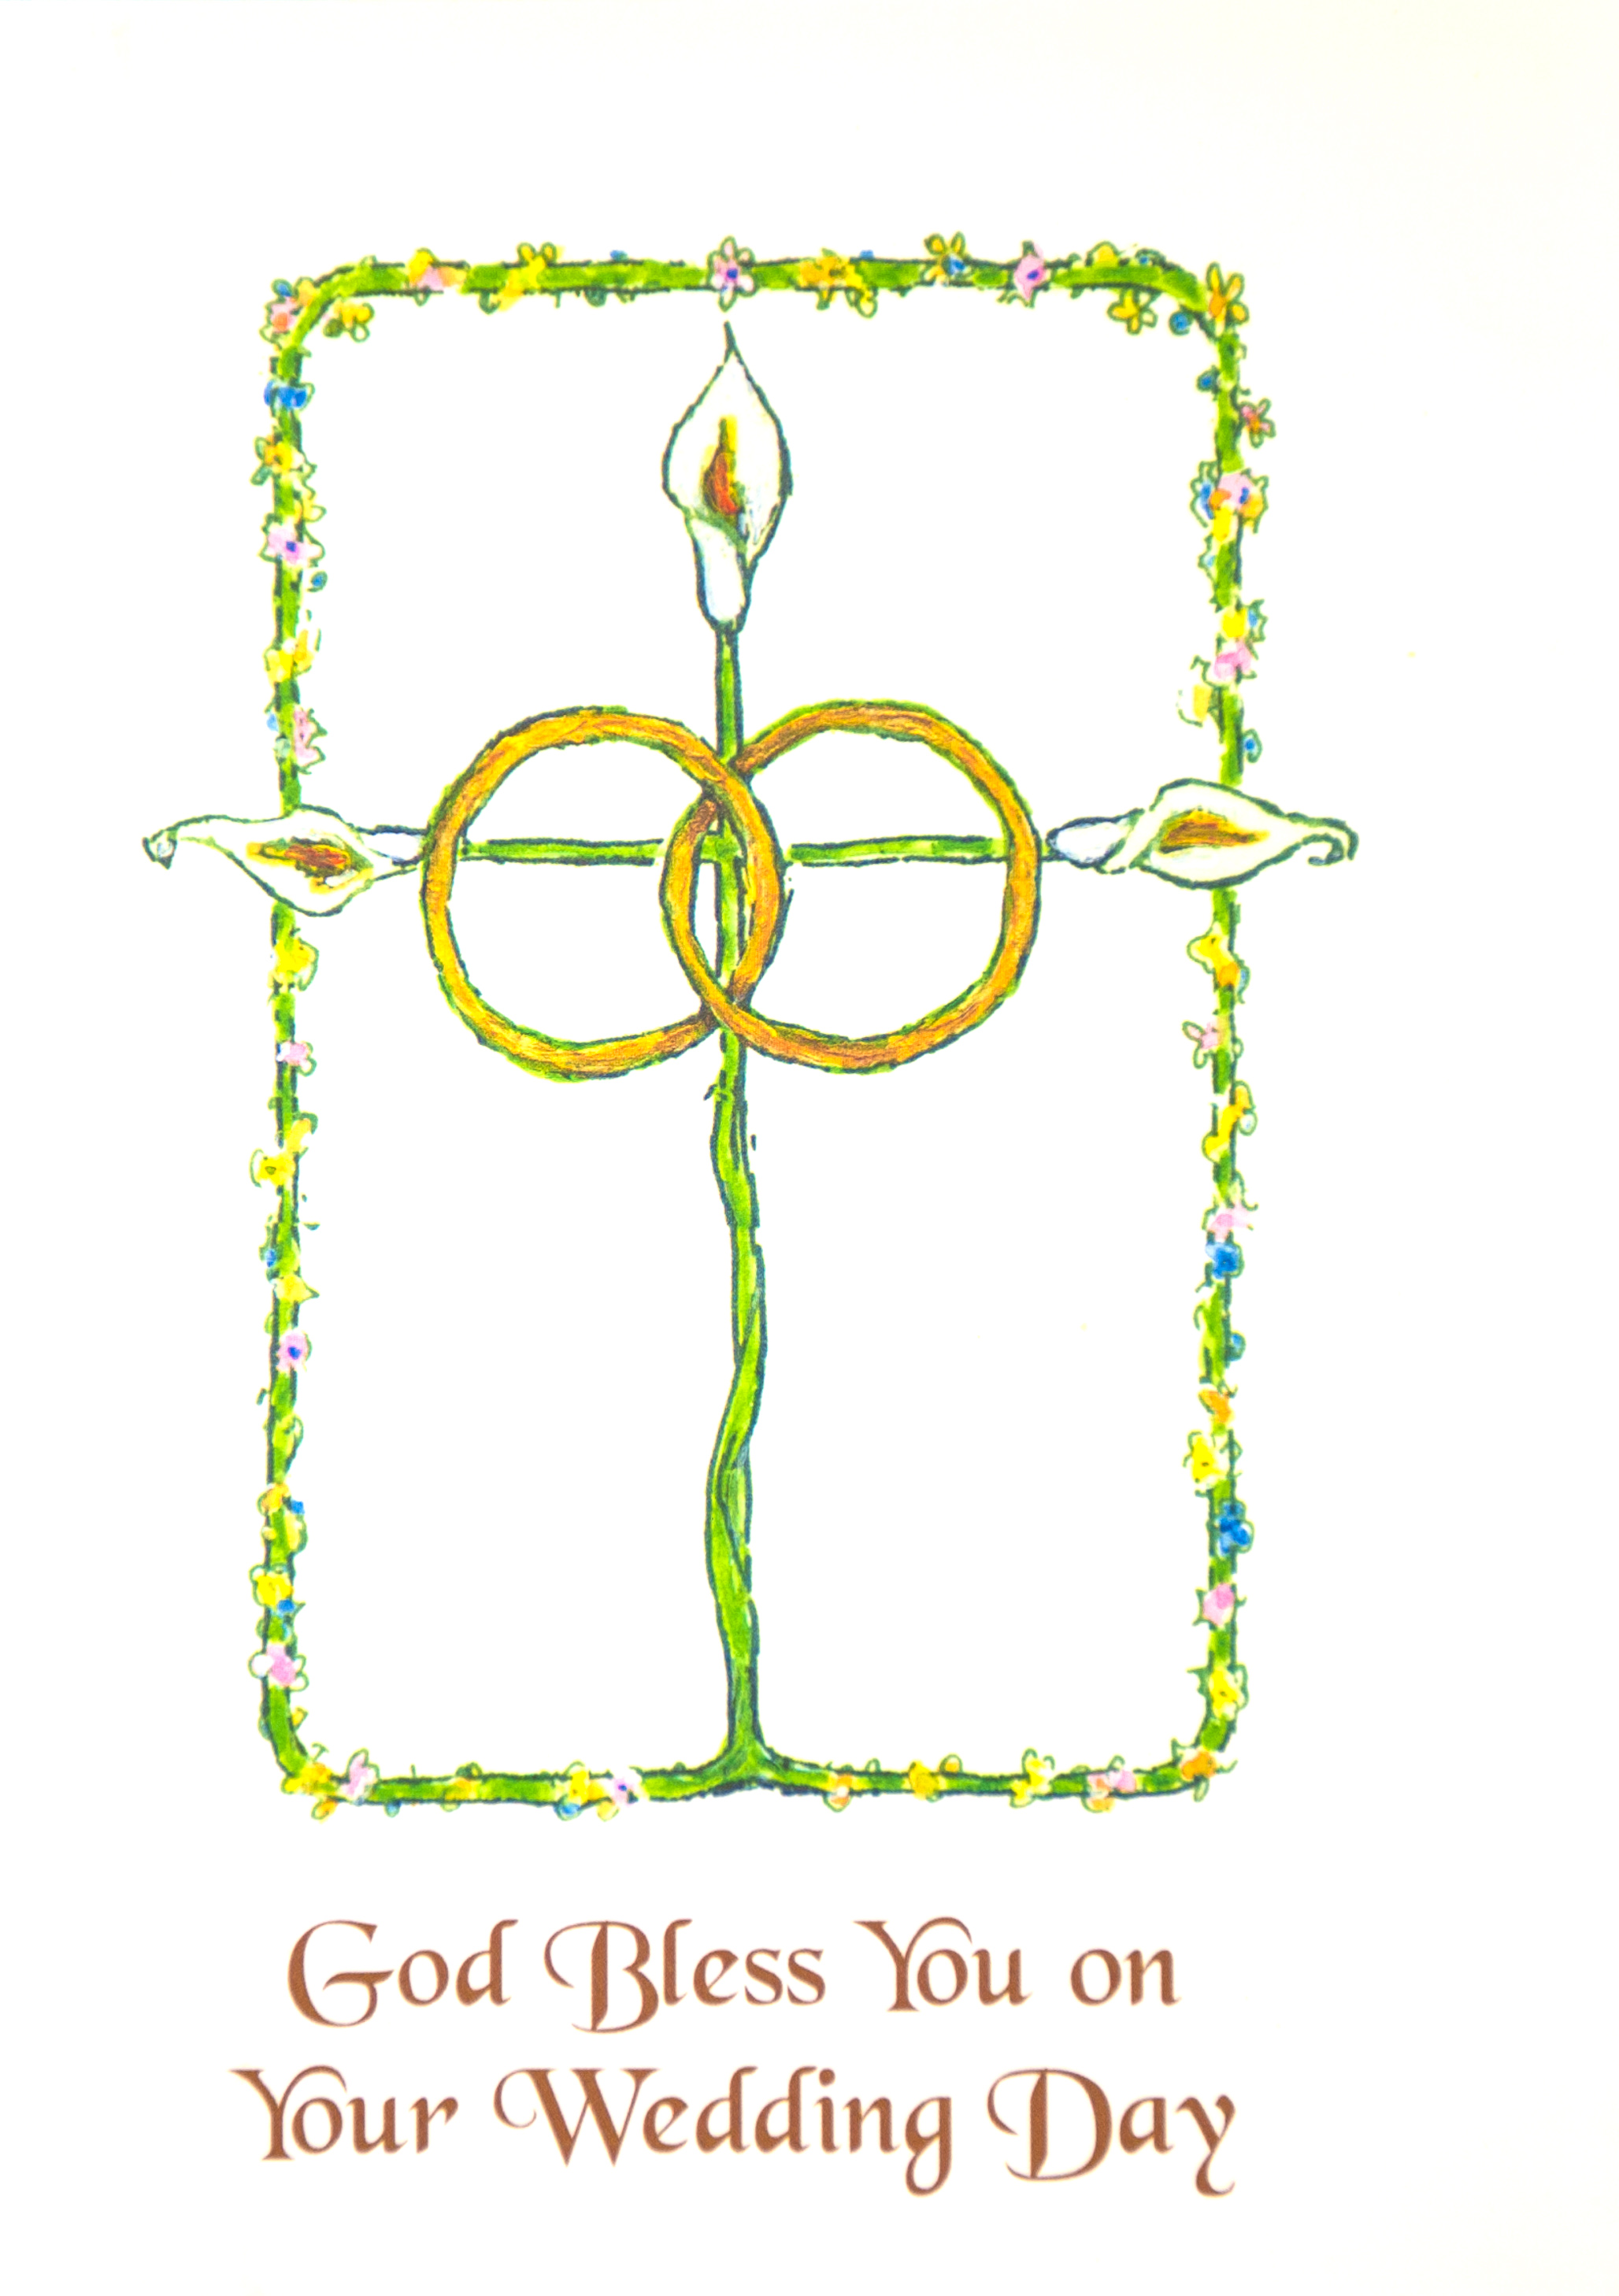 WEDDING   Suggested donation: $10.00 Size: 5 x 7   This Mass card celebrates the sacrament of marriage and includes Augustine's Commentary on the Epistle of John 5.7.2